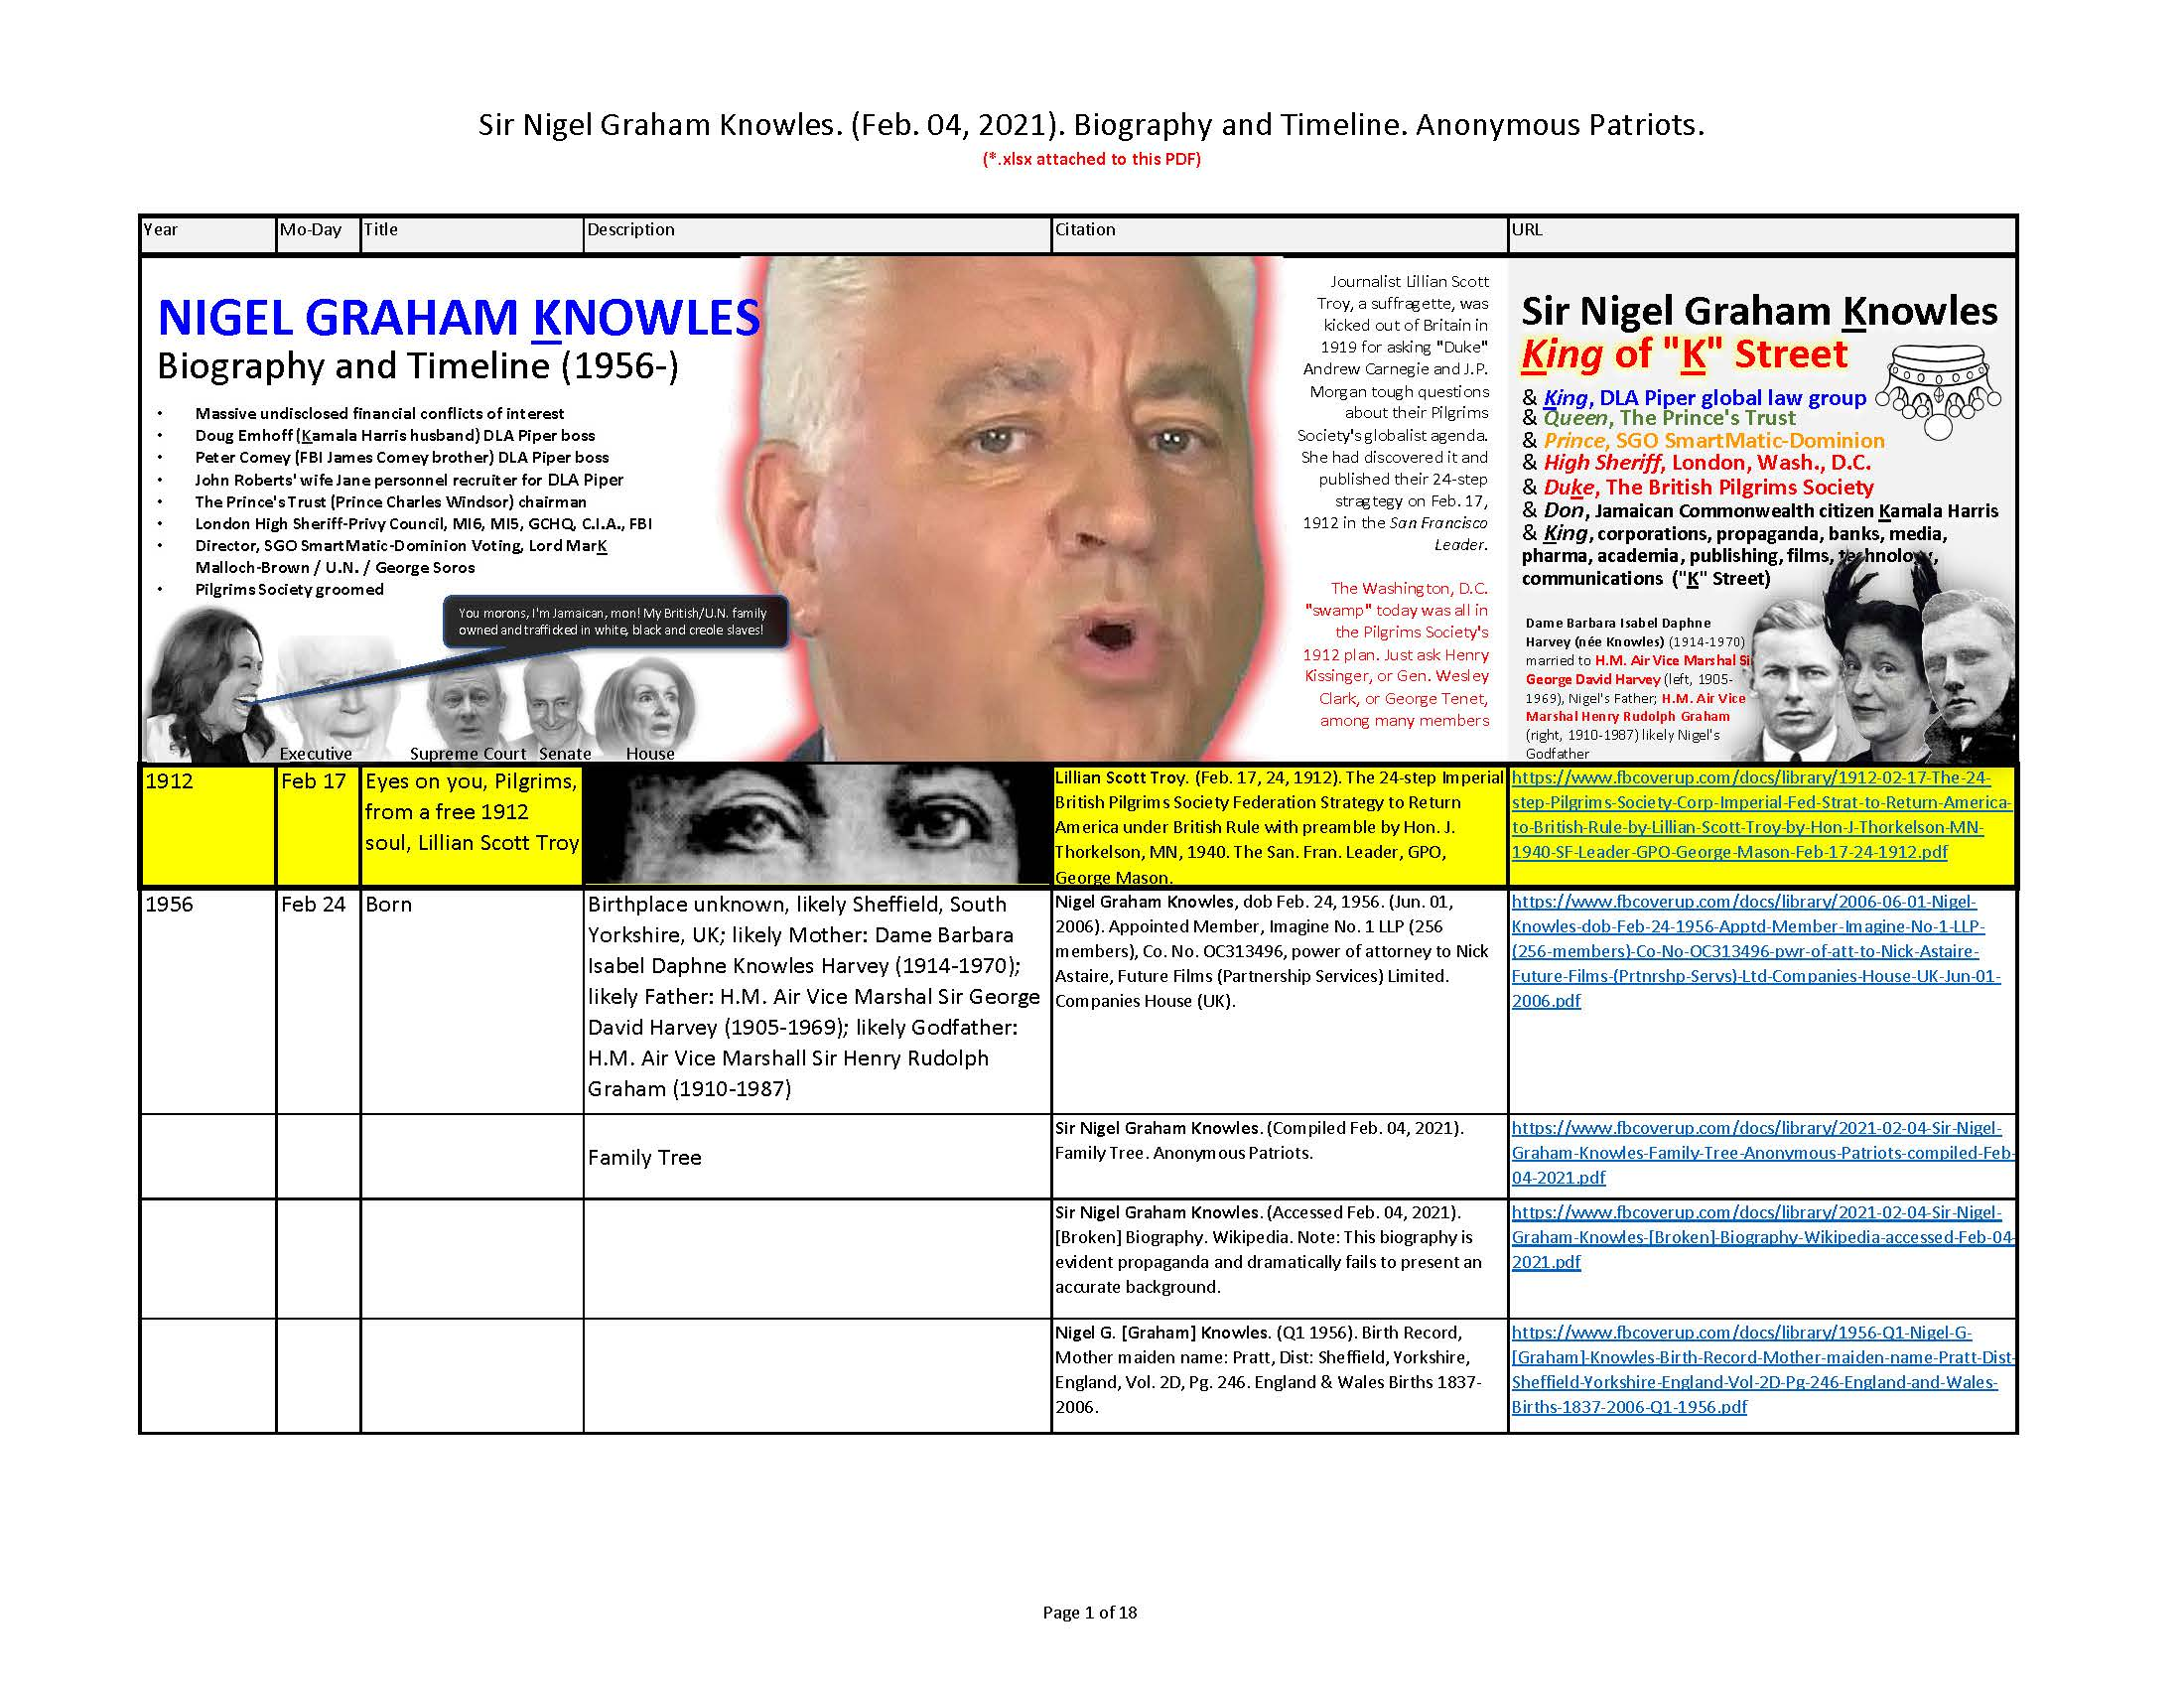 Sir Nigel Graham Knowles. (Compiled Feb. 09, 2021). Biography and Timeline. Anonymous Patriots.